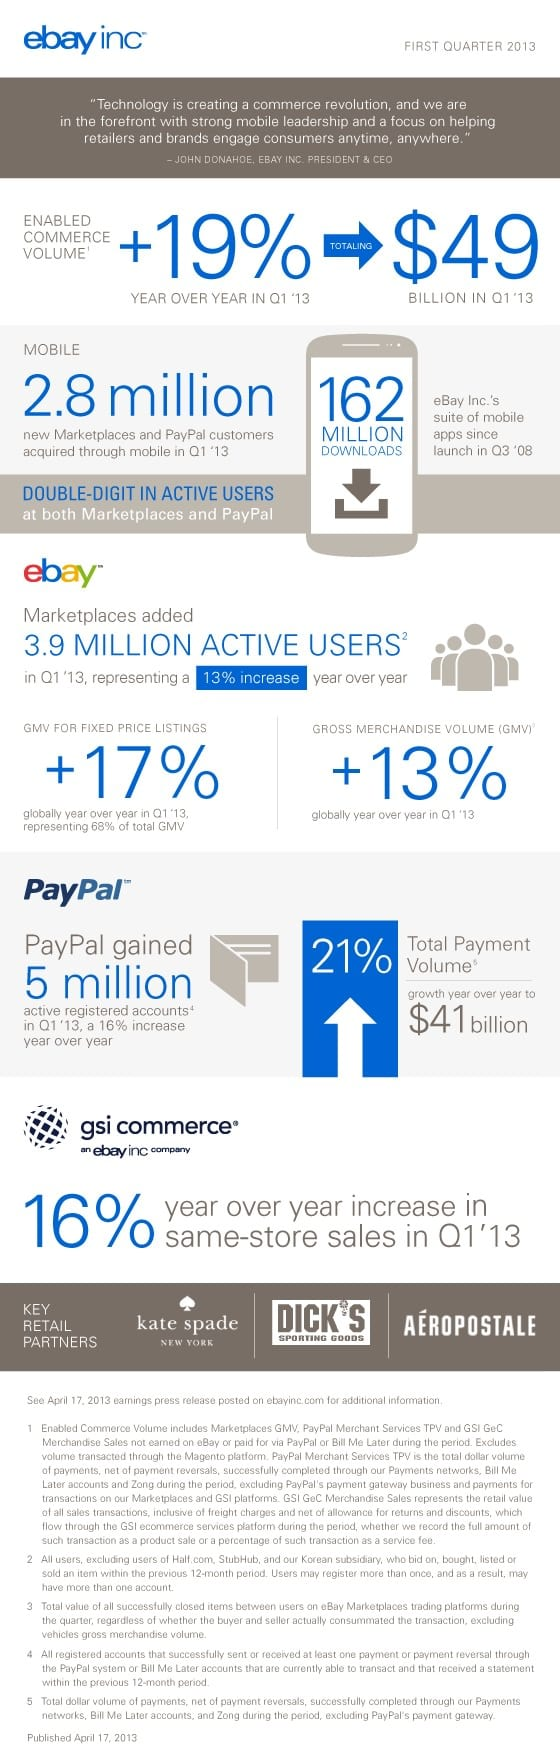 ebay case study After more than a decade of growth, we helped ebay reposition its brand —  signaling a new chapter in the technology leader's business.